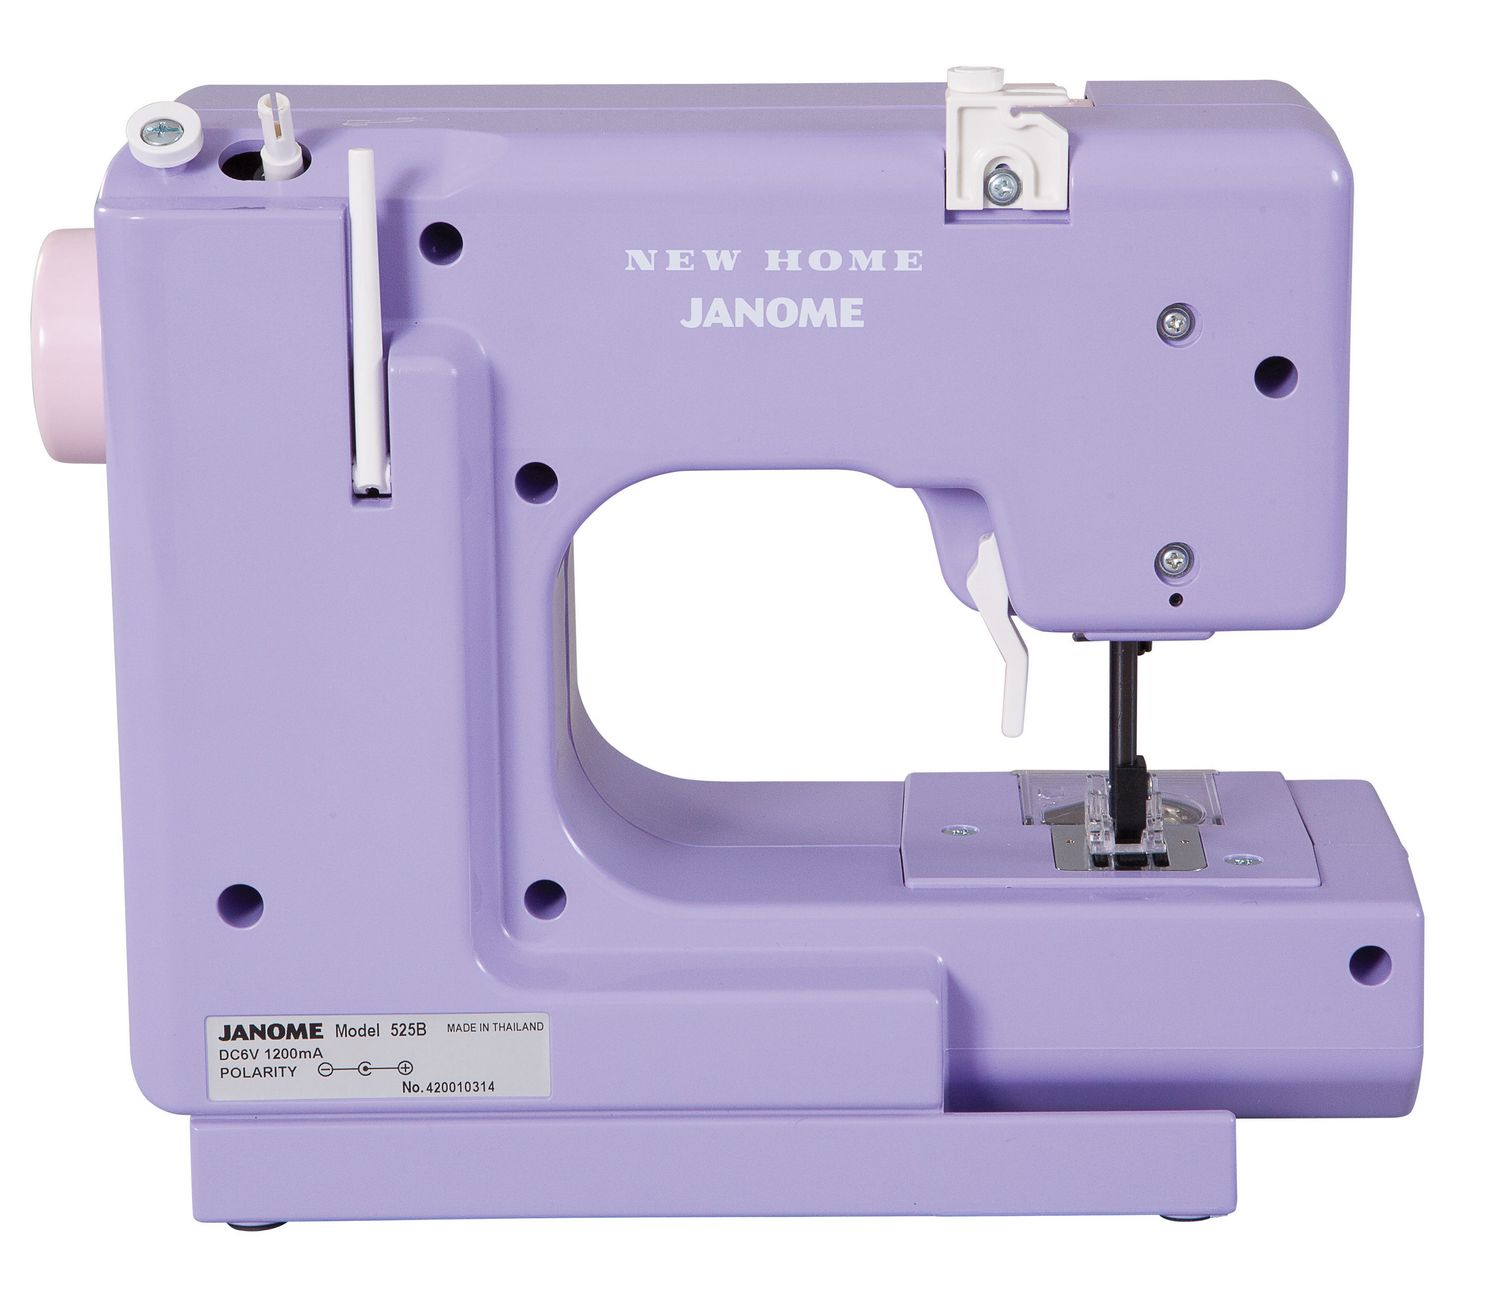 ip janome machine walmart sewing teal canada portable quilting quilt en